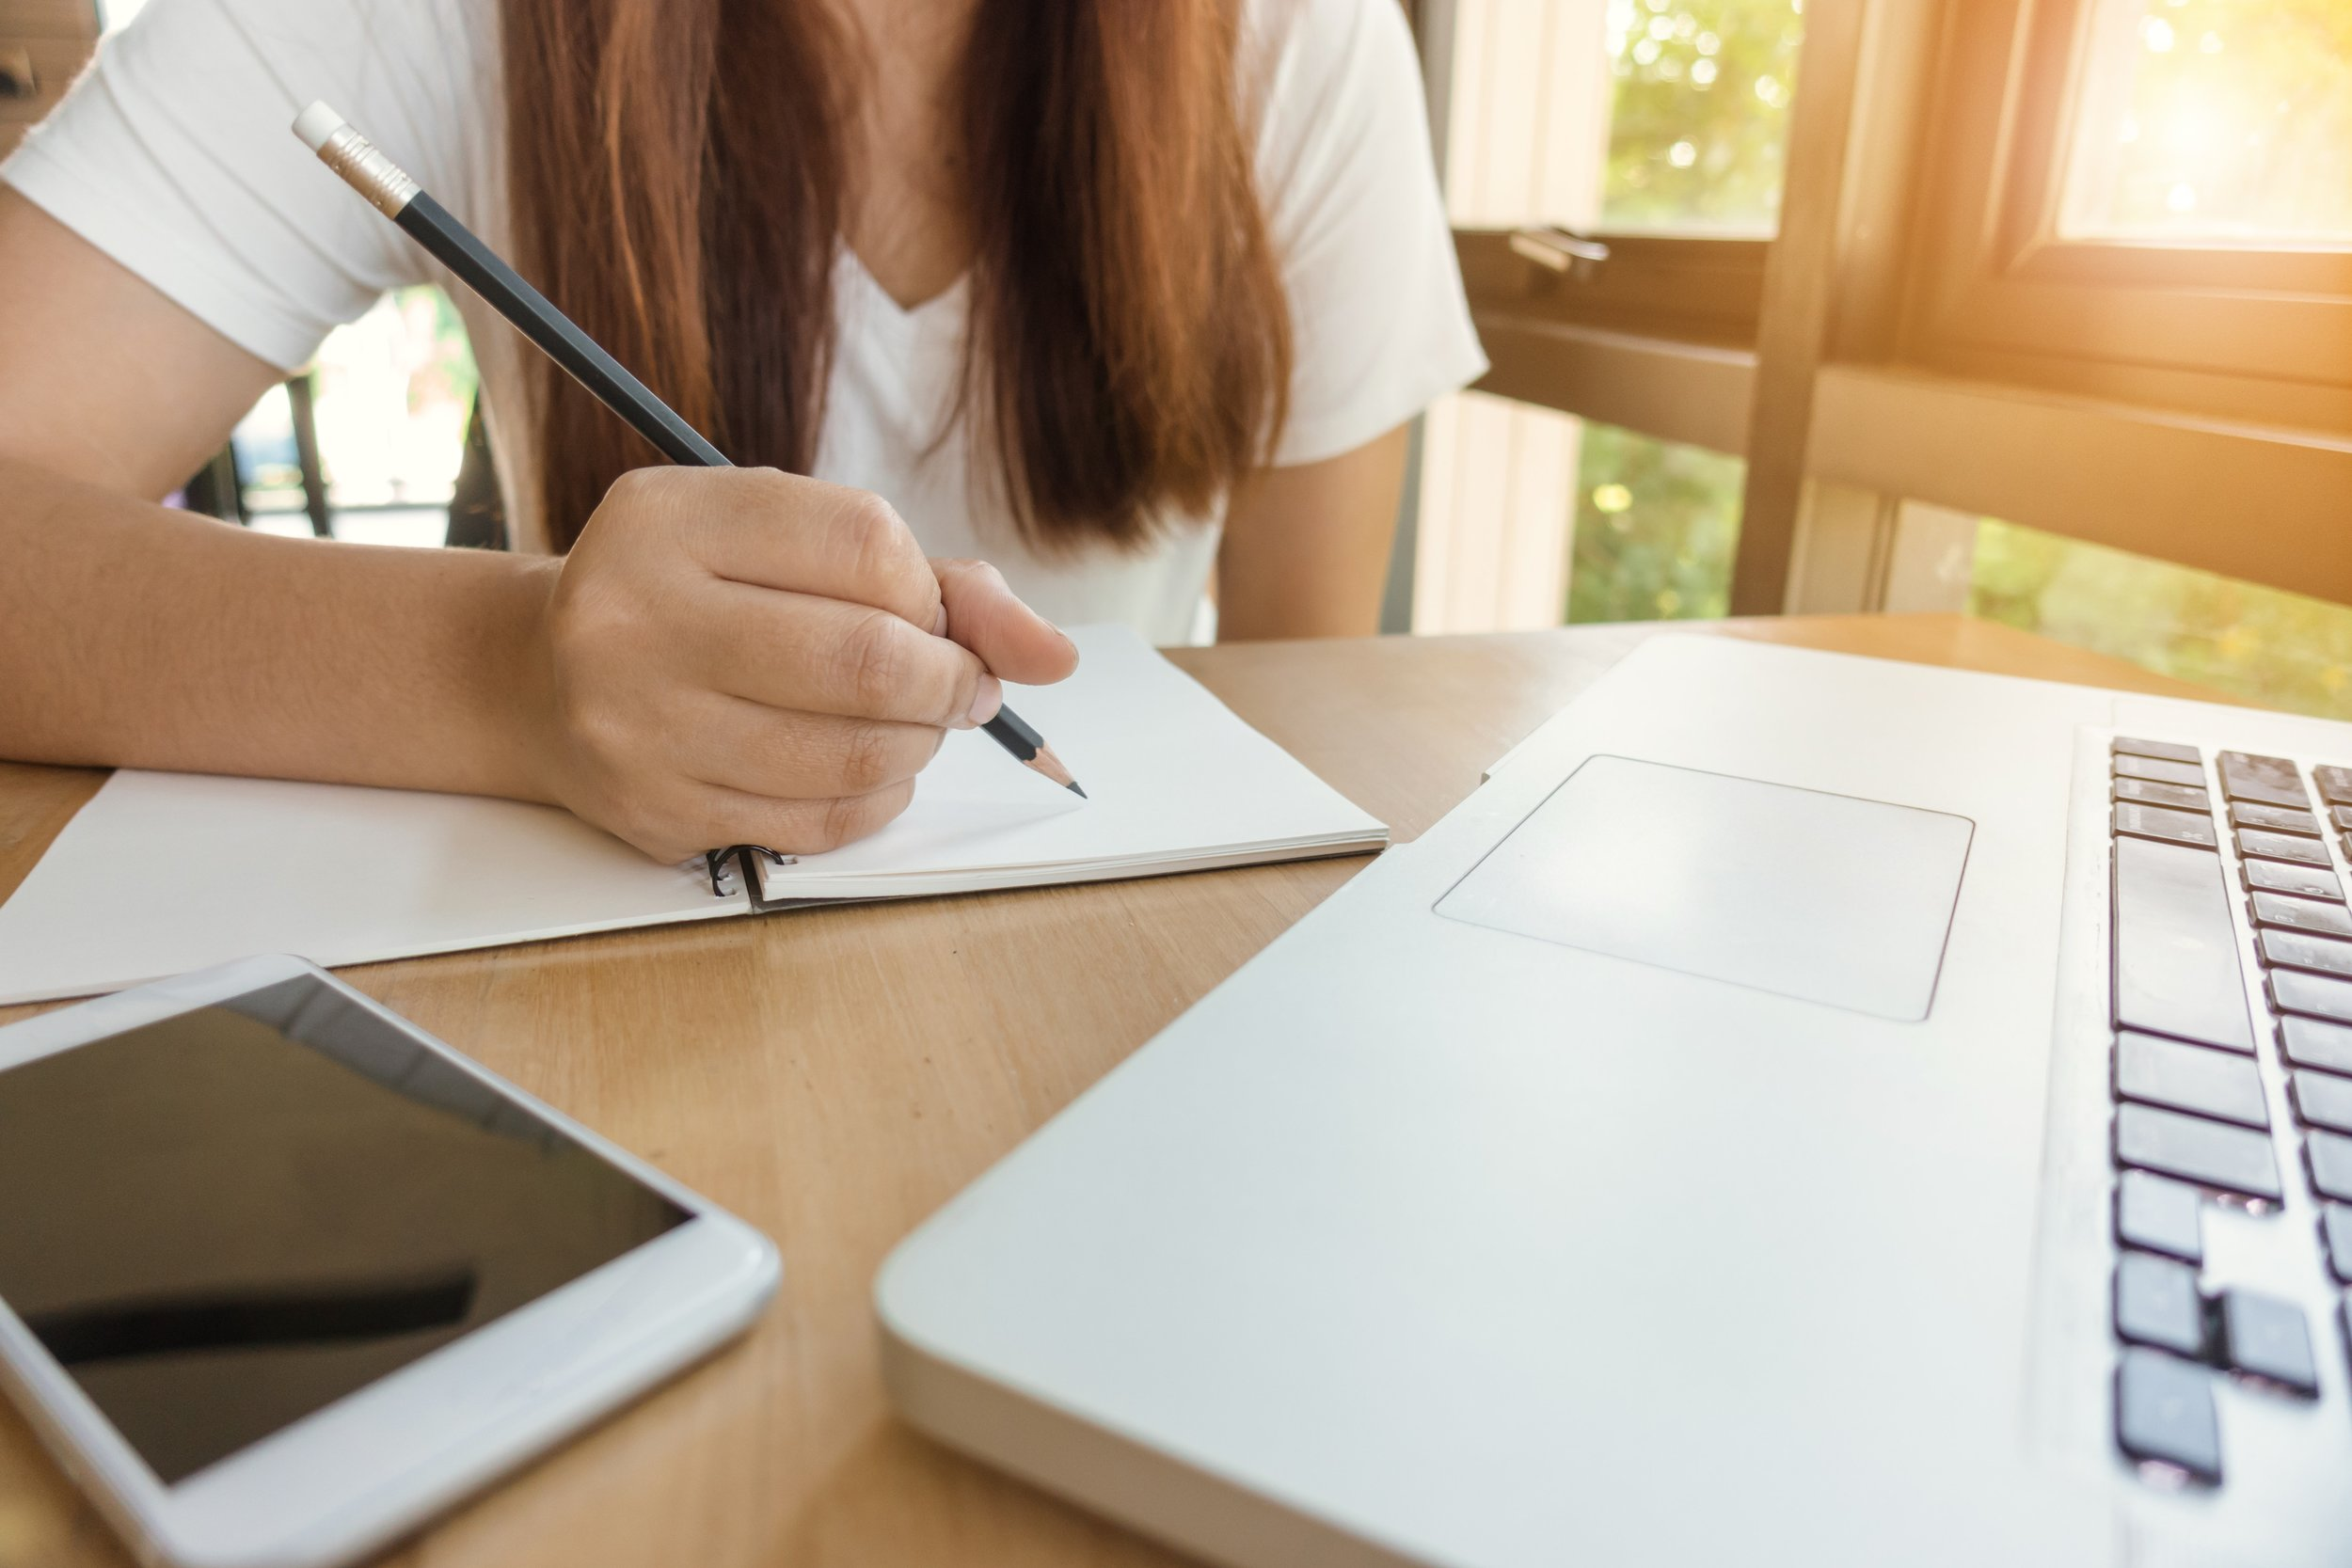 Why writing? - Essays at school, university research papers, job applications…We all need to write clearly and effectively to achieve our goals. Further, writing develops critical thinking skills and creativity!Learn More